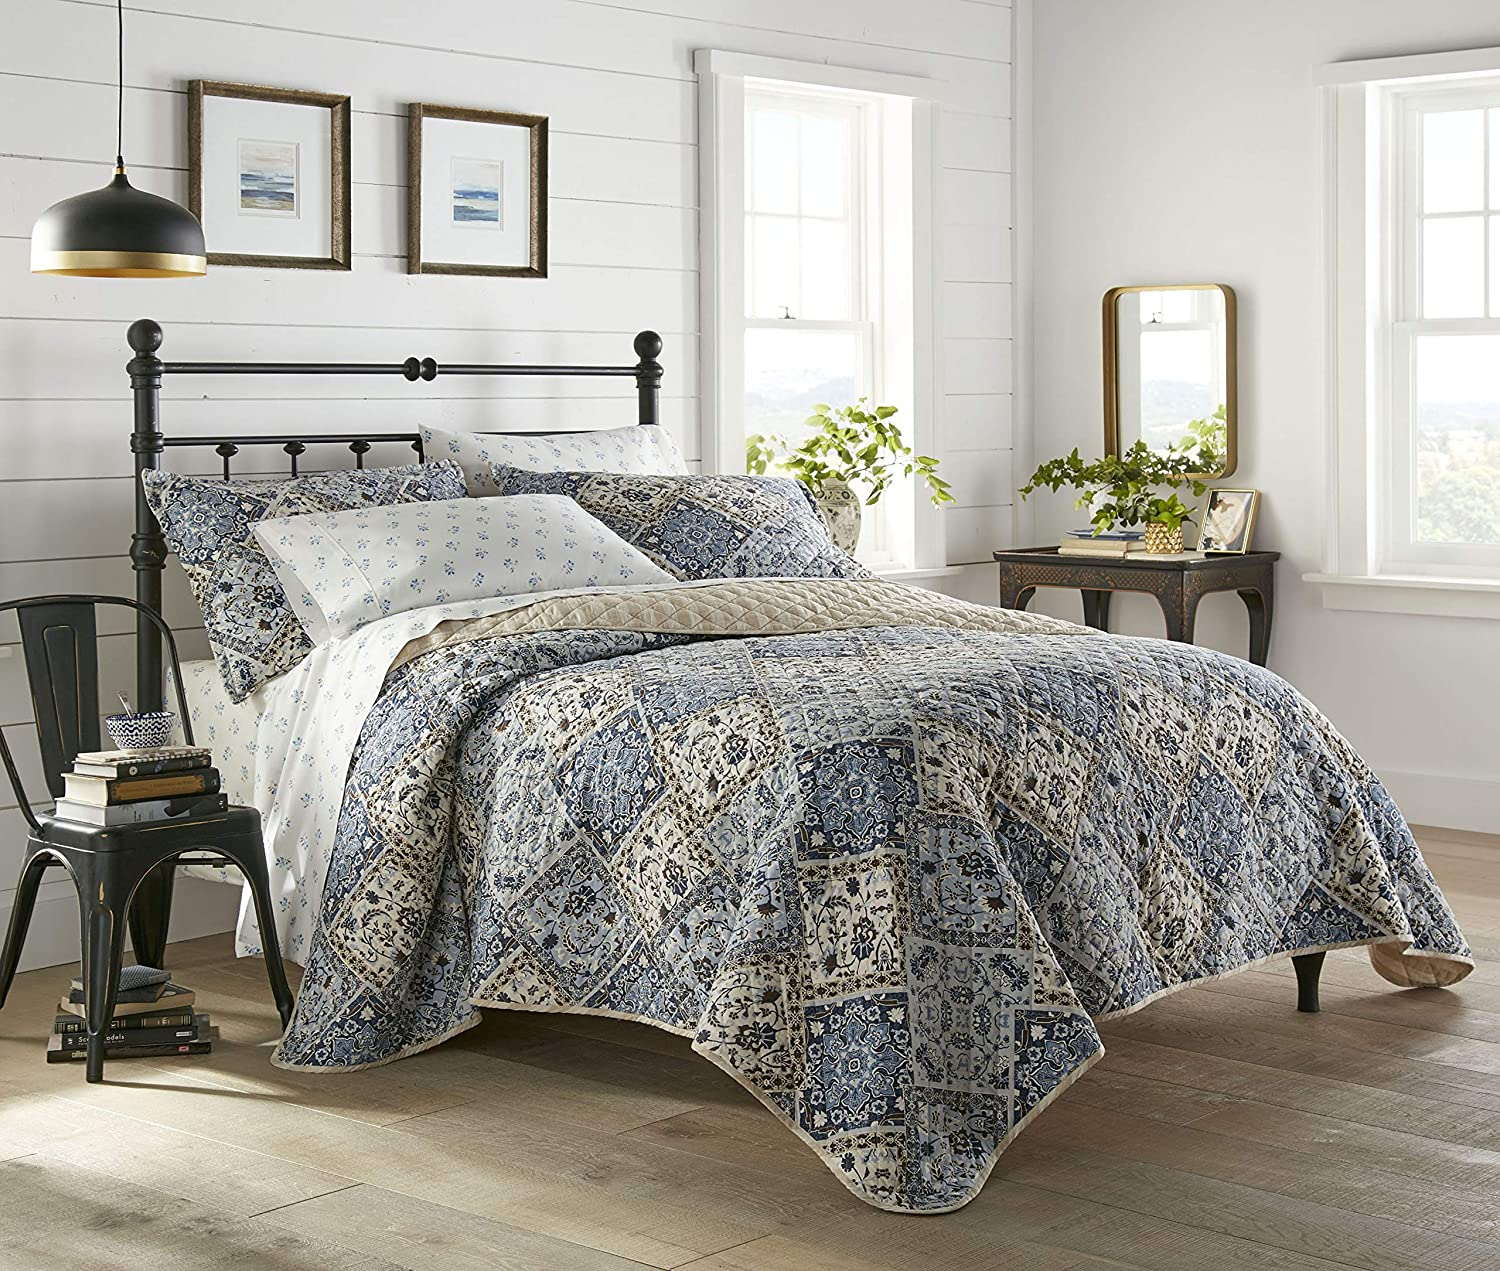 Stone Cottage lowest price Arell Fashionable Collection Revers Cotton Set-100% Quilt